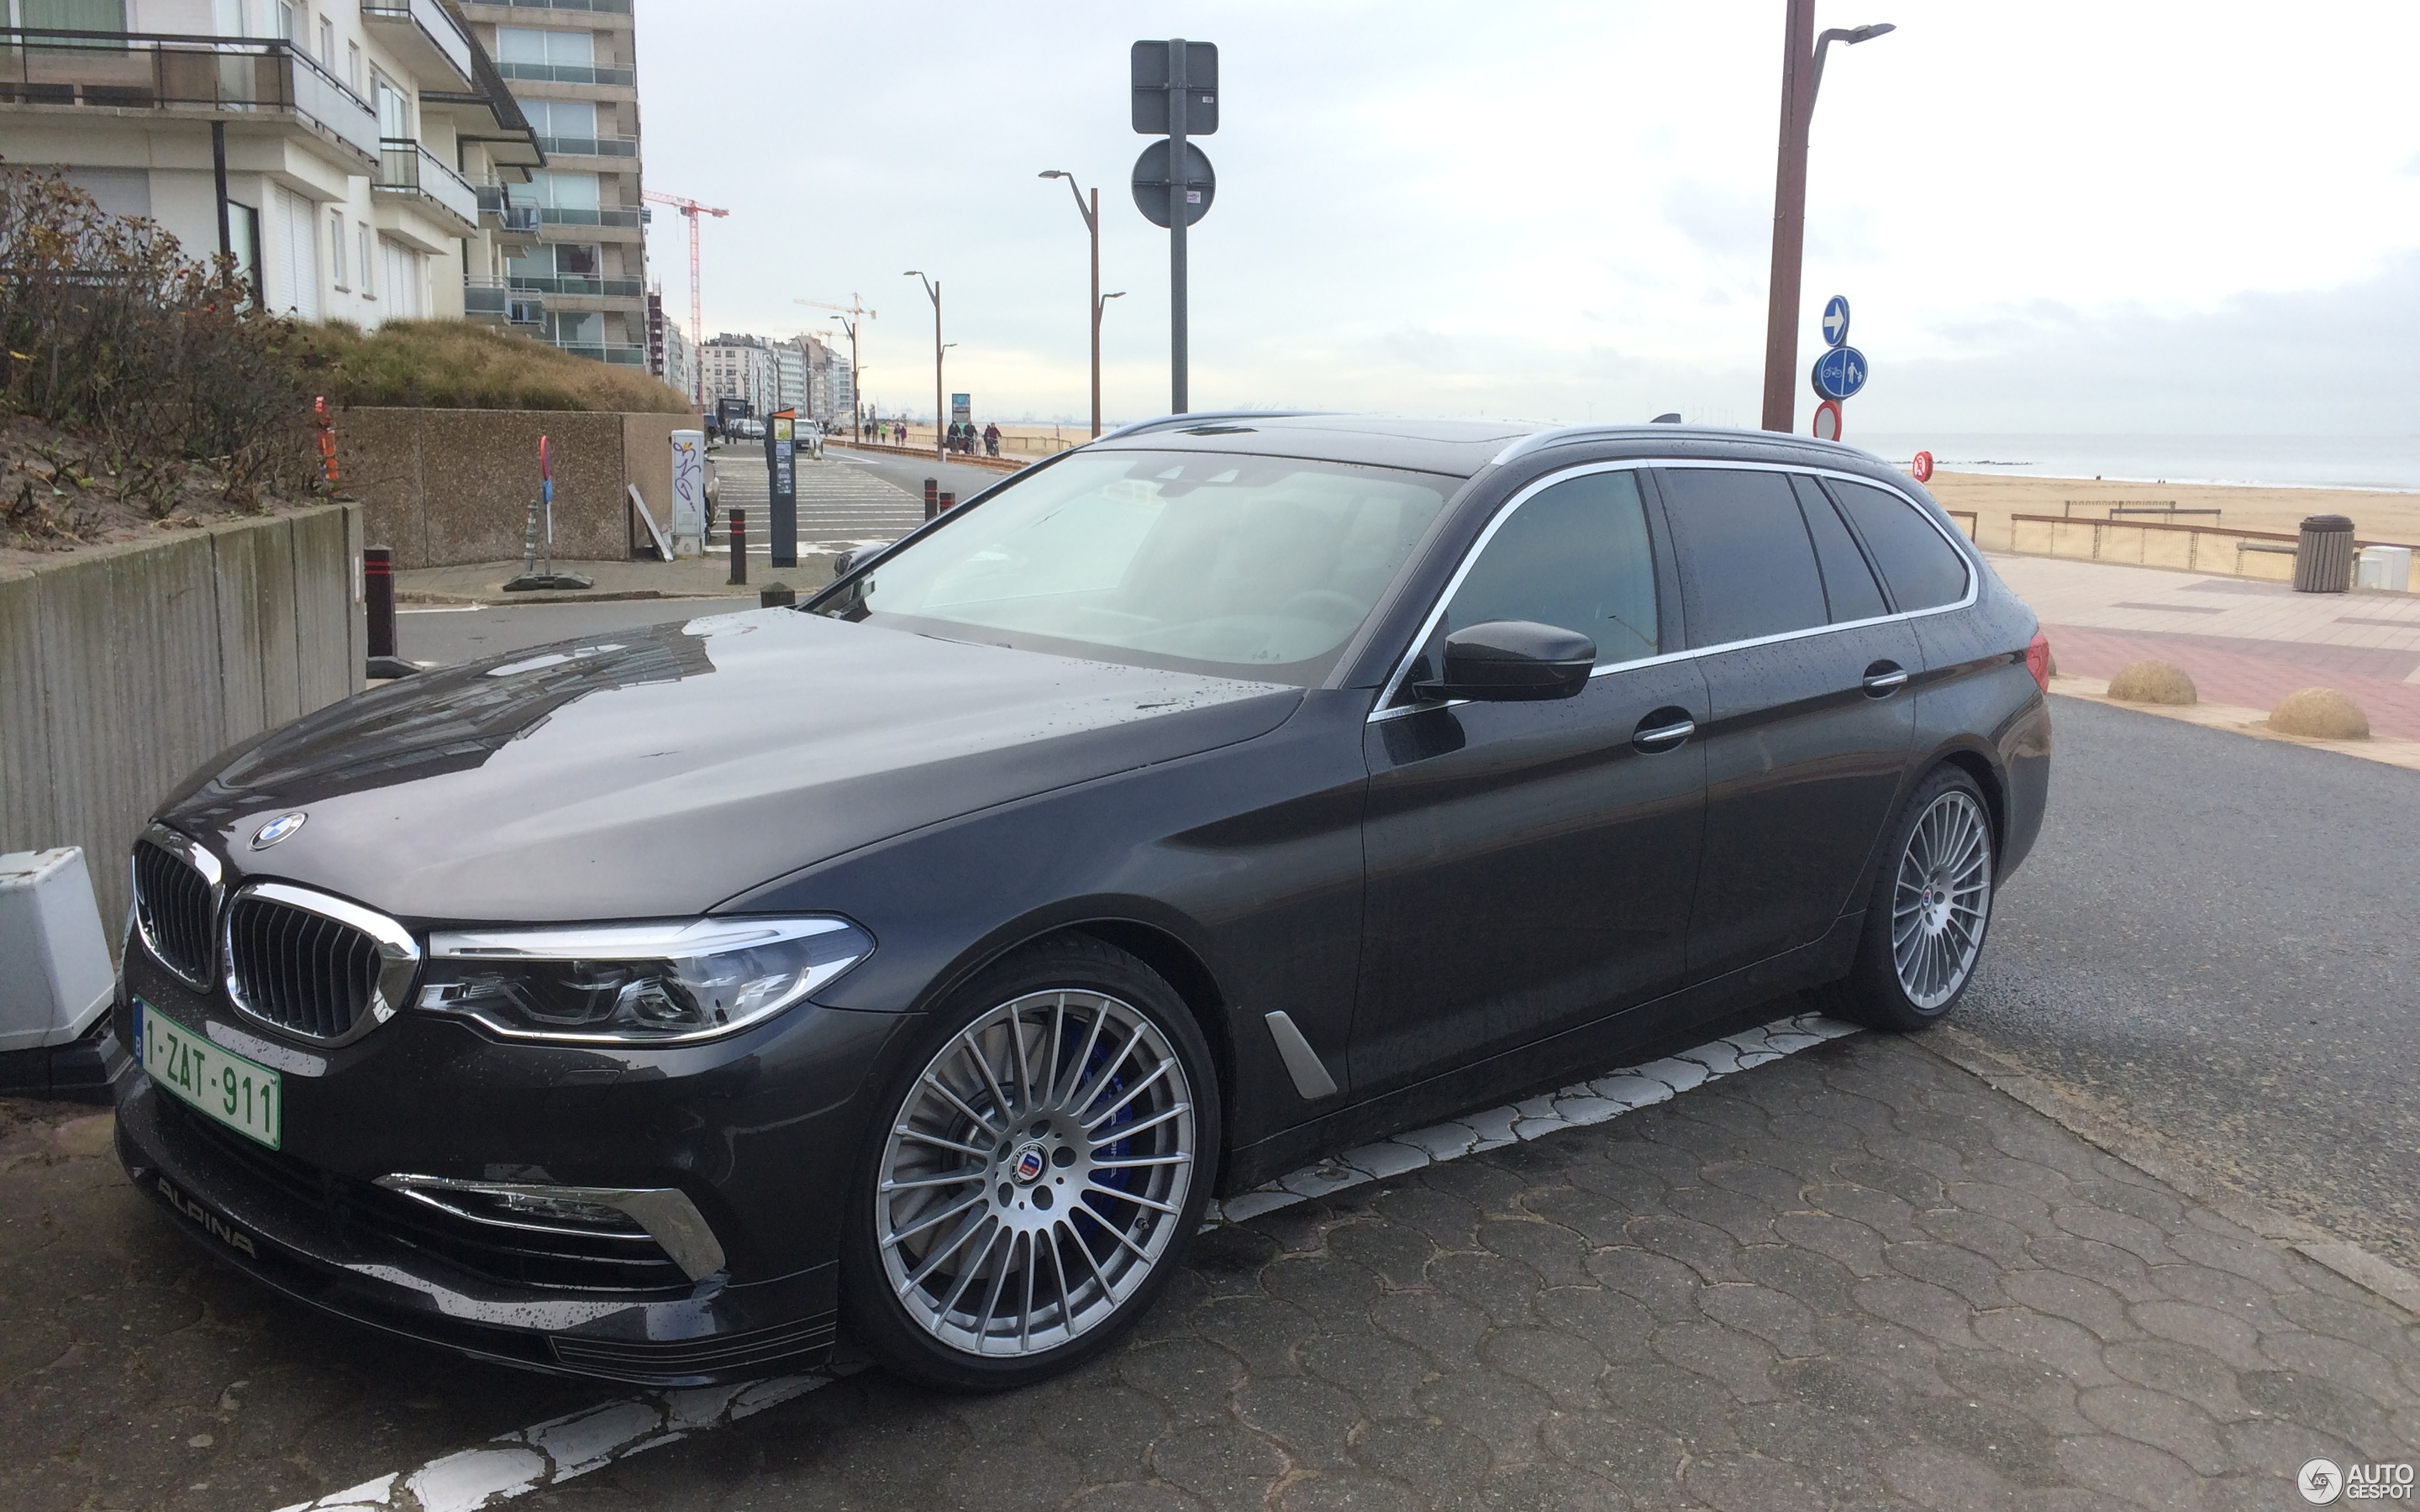 Alpina B5 Biturbo Touring 2017 - 11 November 2017 - Autogespot